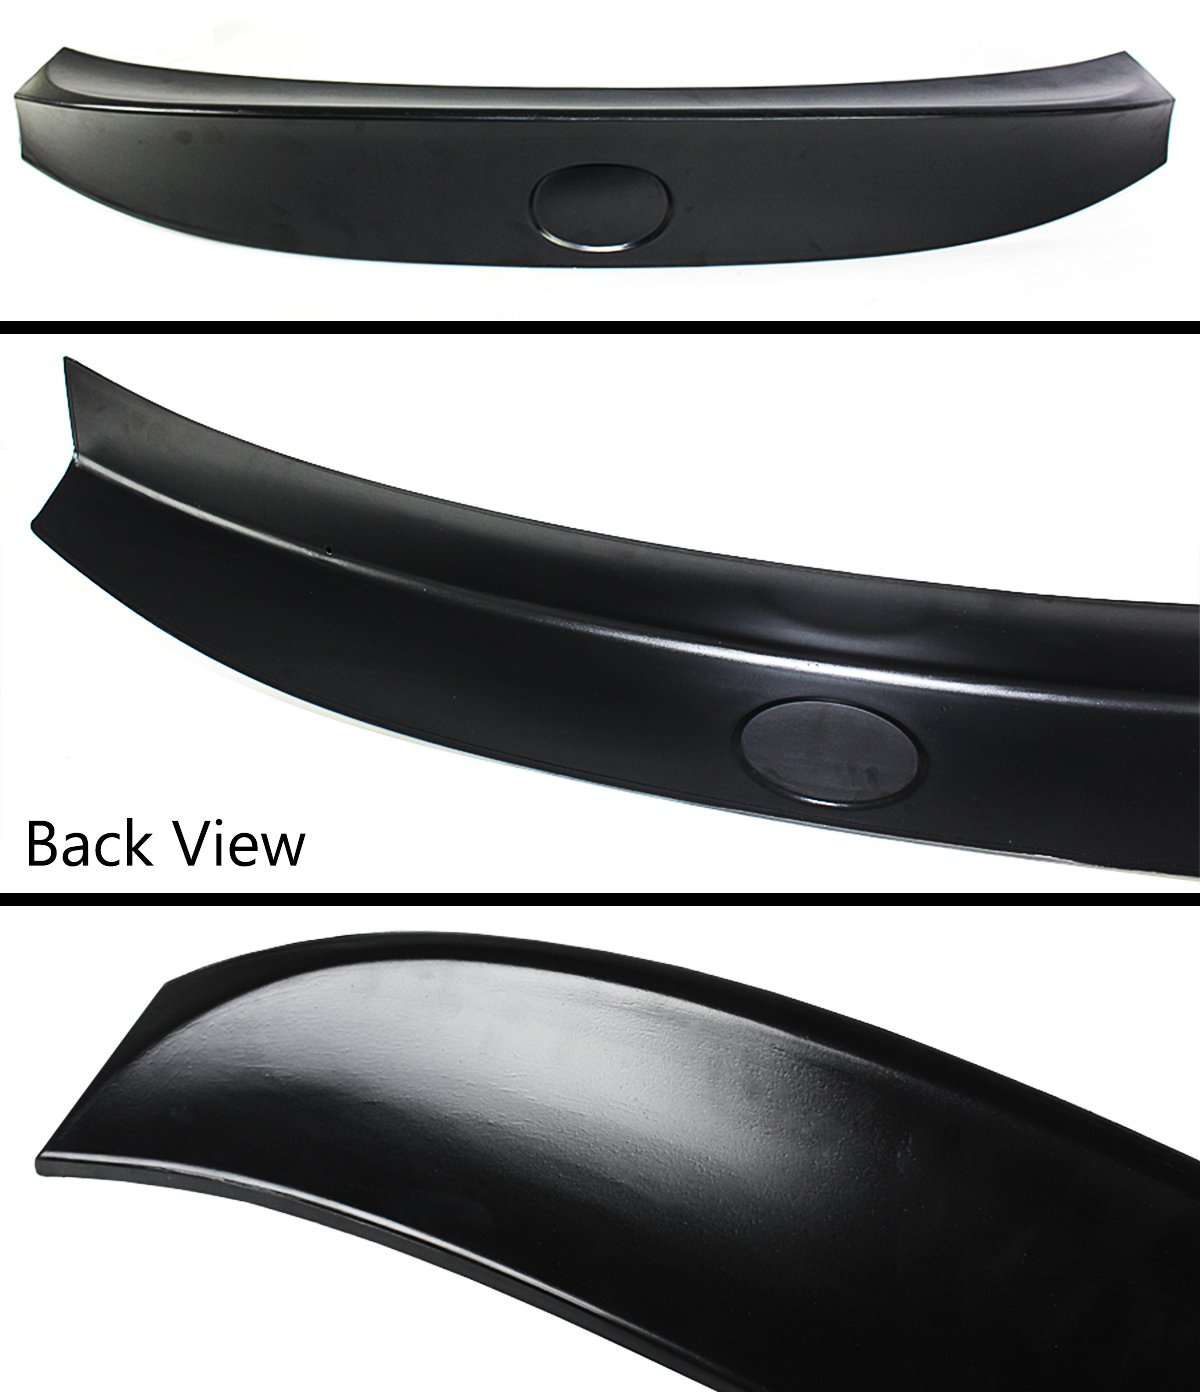 VIP Rear Window Roof Spoiler Cuztom Tuning Fits for 2006-2013 Lexus IS250 IS350 ISF Wald Style Duckbill Trunk Lid